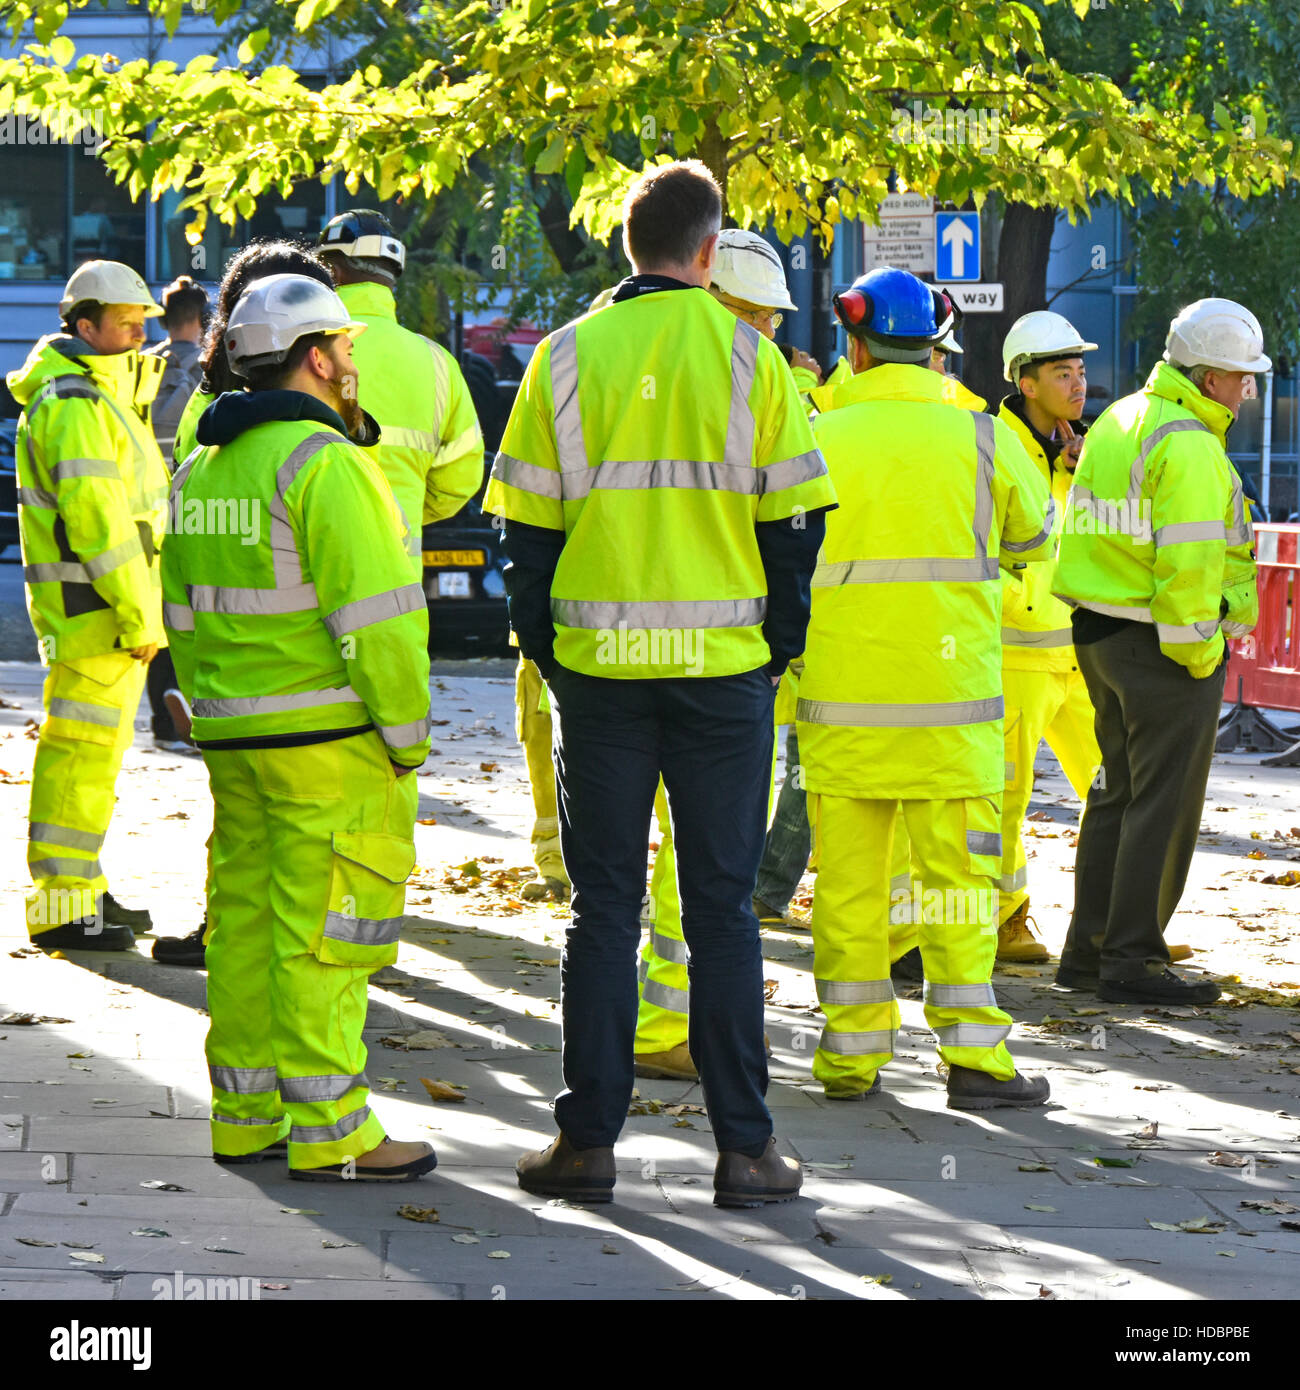 Group of people hard hat men man standing around informal team meeting near major road works project London England - Stock Image